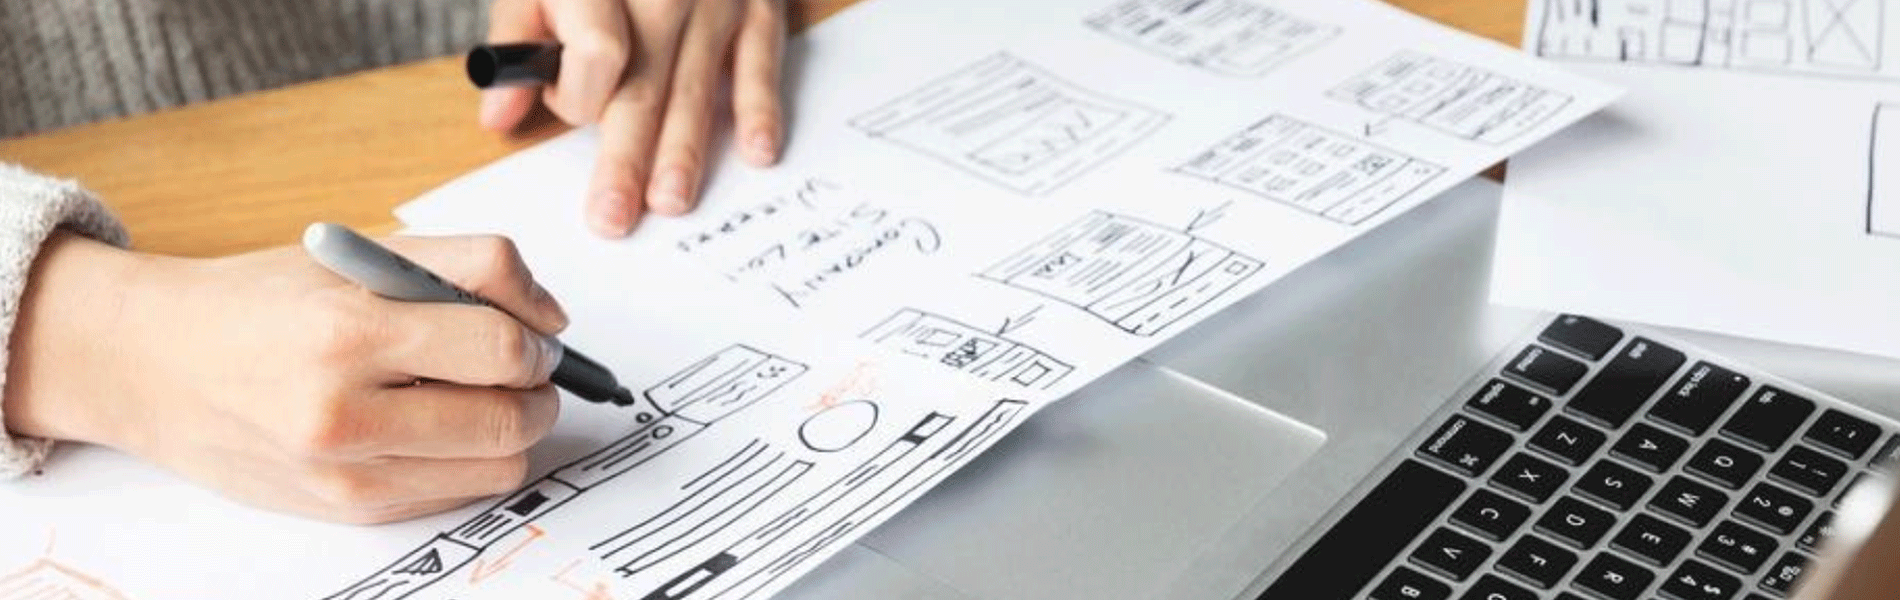 Research phase of user interaction design, hands shown drawing a user flow chart